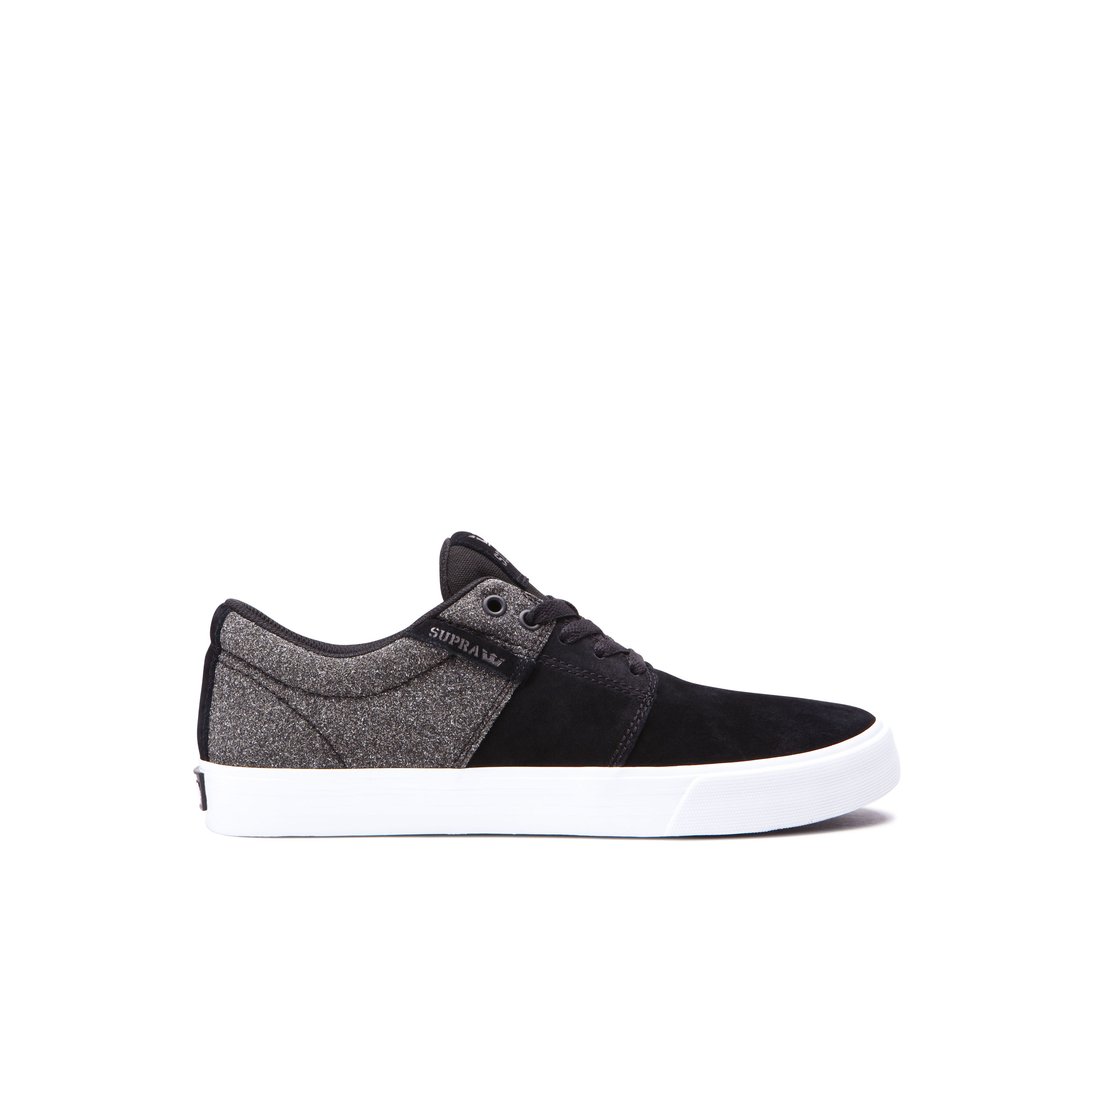 STACKS VULC 2 black white black